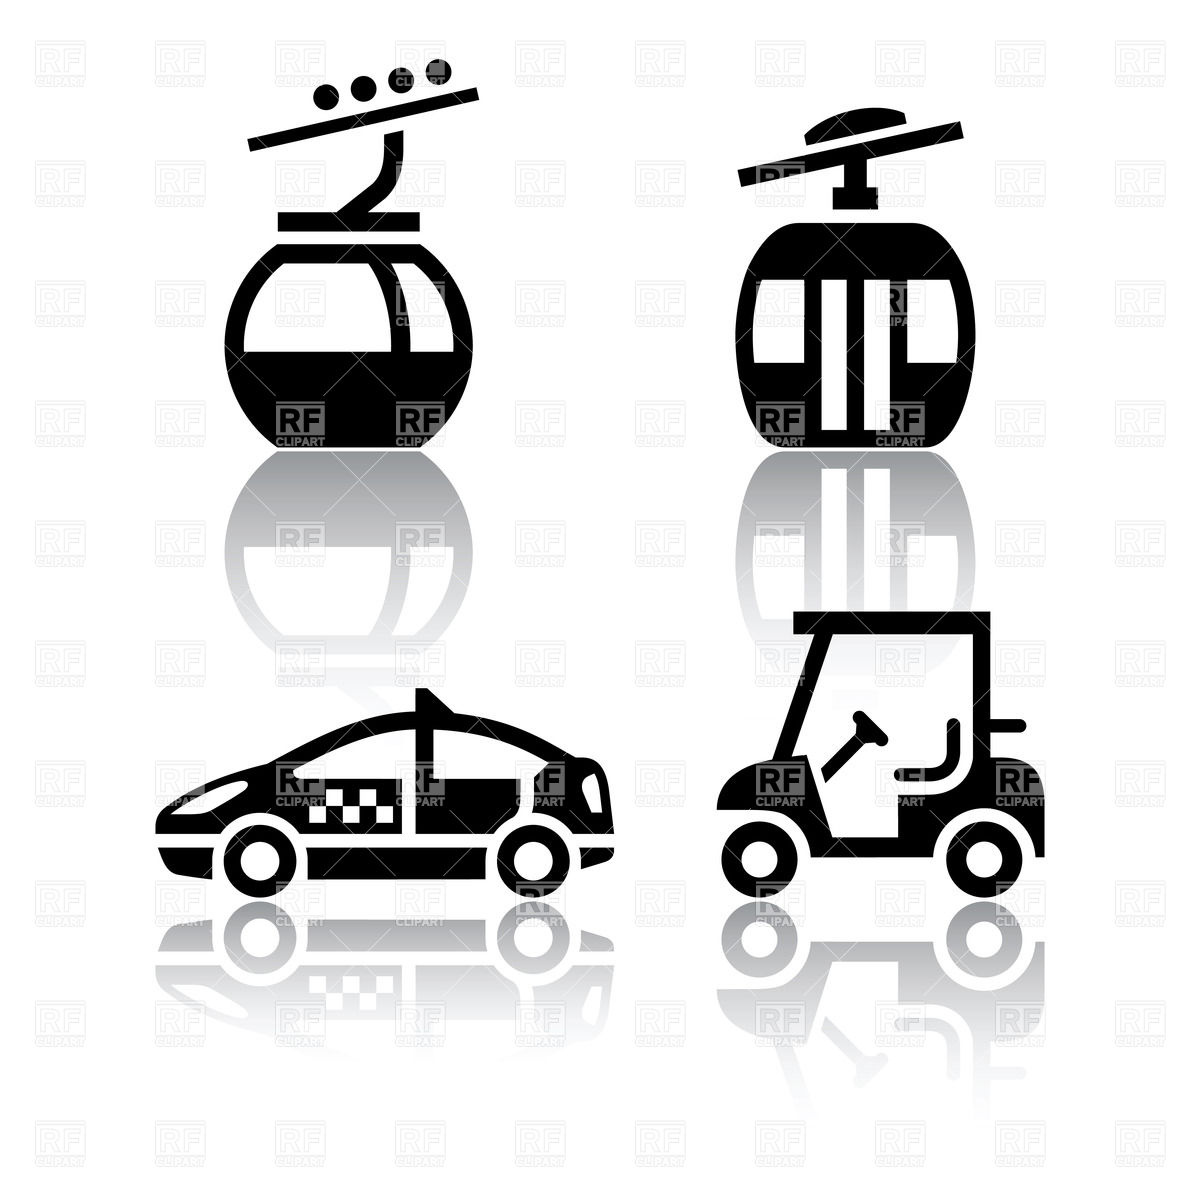 15 Overhead Car Icon Vector Images